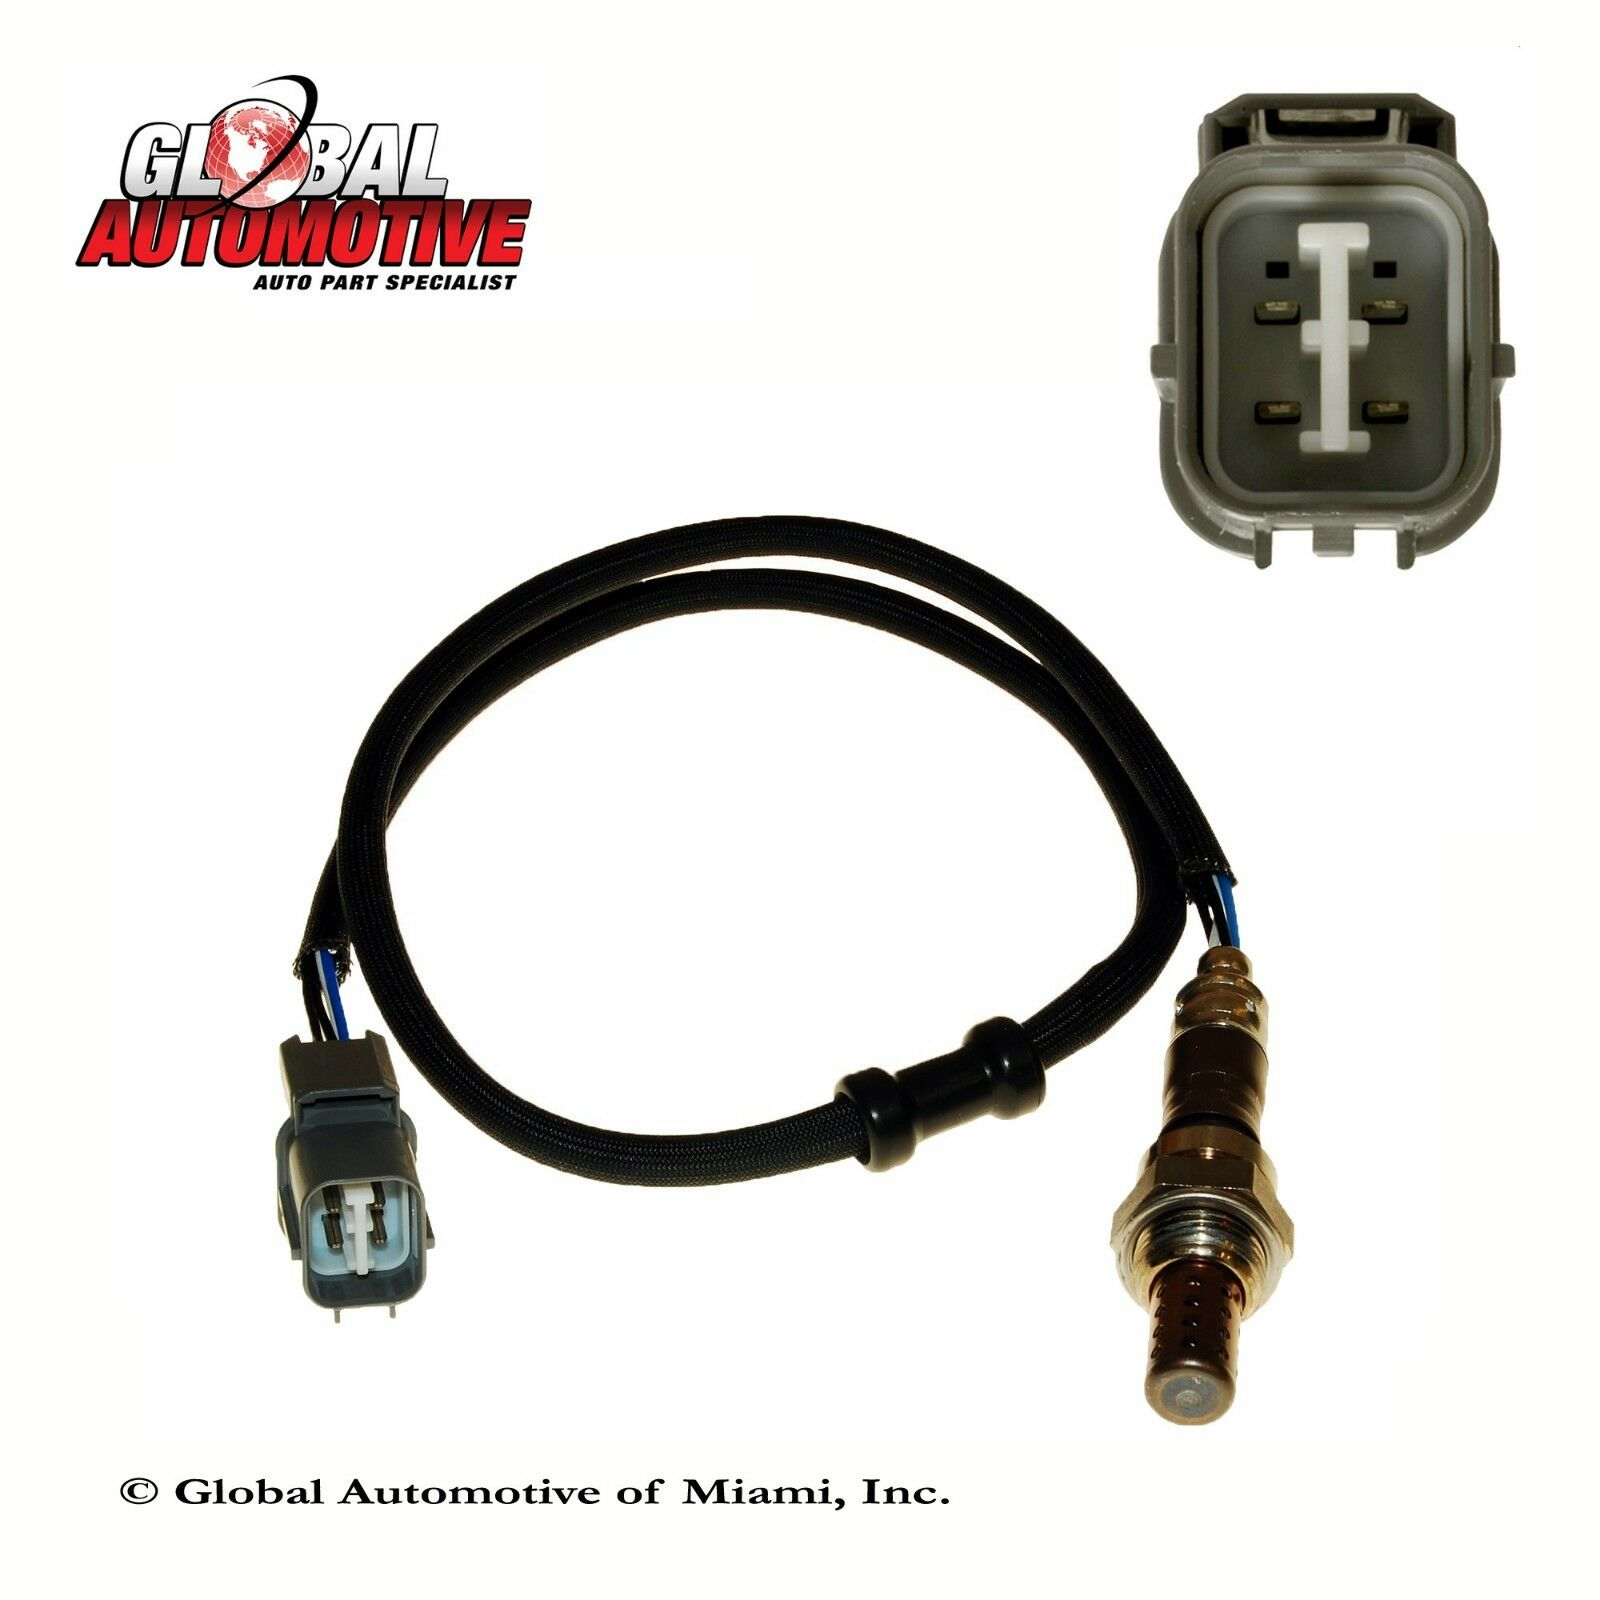 New Standard Motor Products Oxygen Sensor SG1844 For Acura 1995-2004